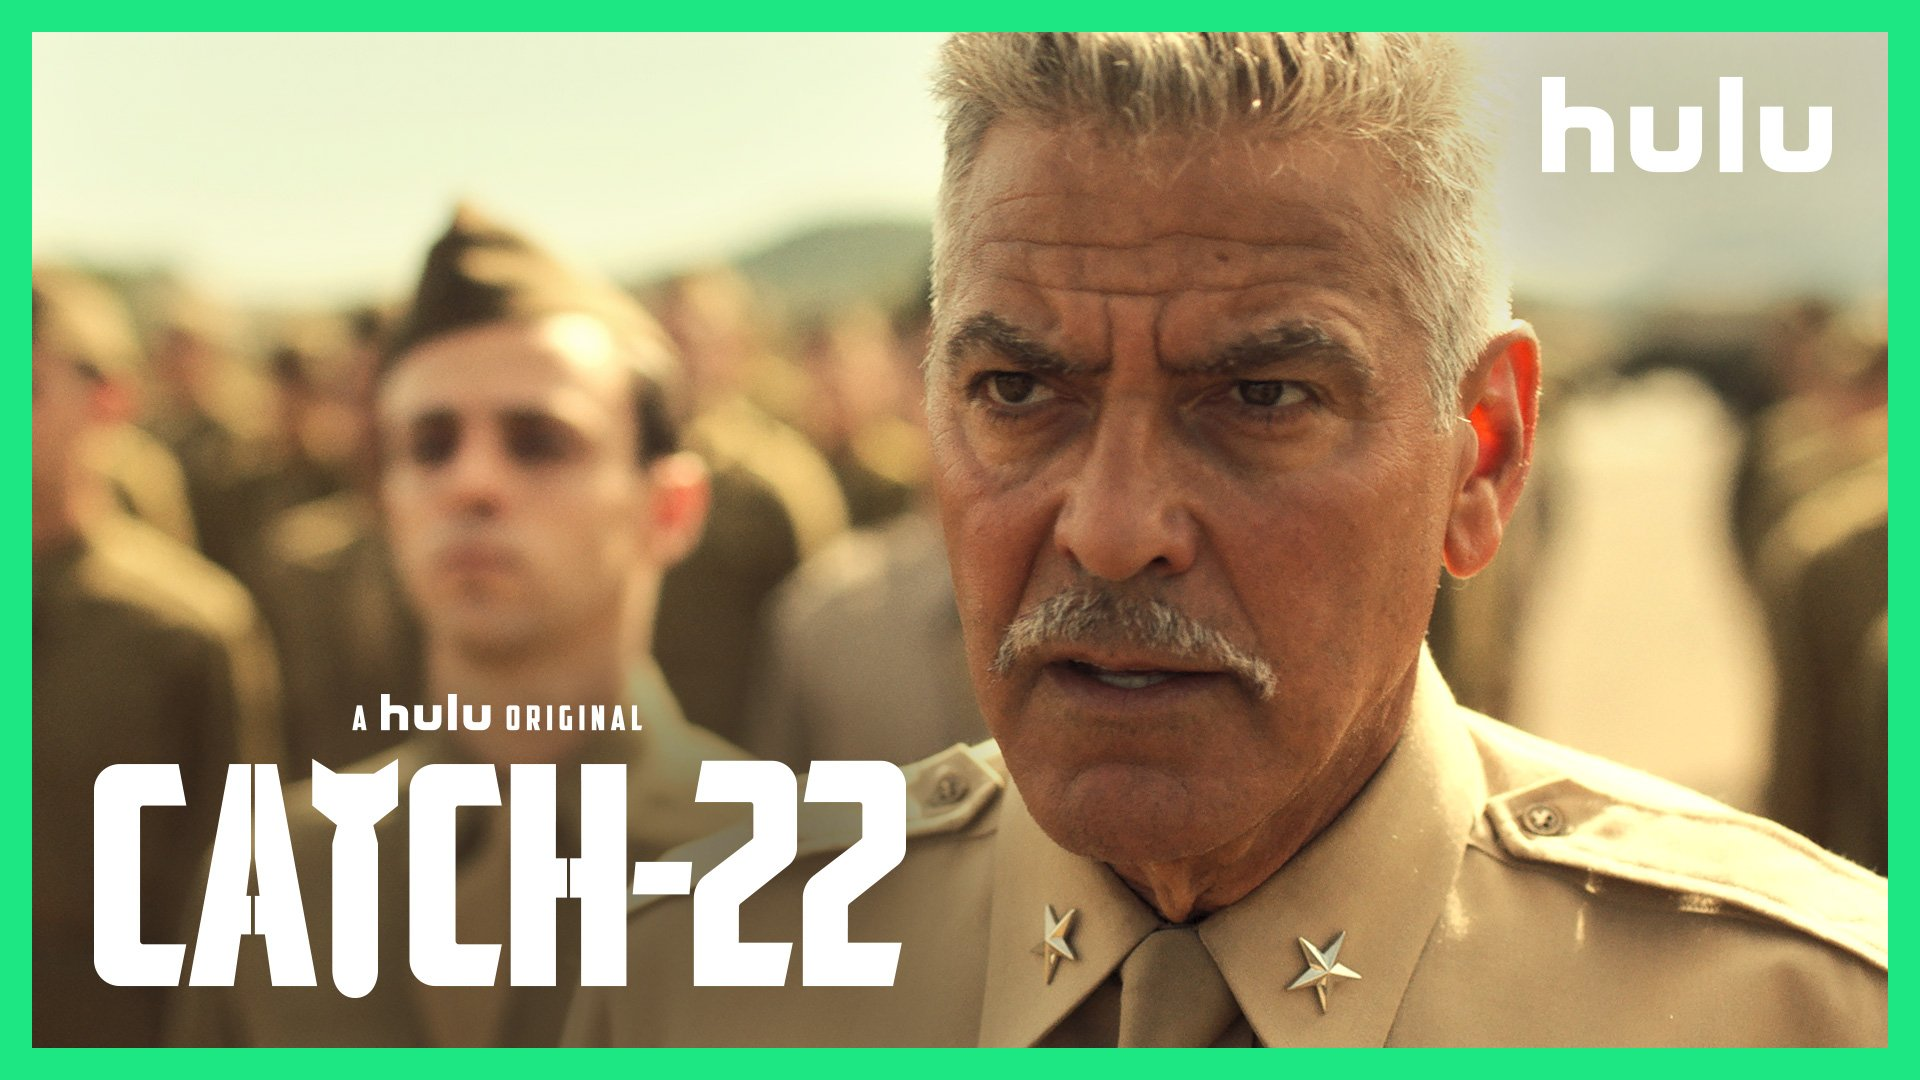 That's some Catch that Catch-22. #Catch22onhulu premieres May 17. https://t.co/hkZgUy2LkN https://t.co/TJSIejNq32